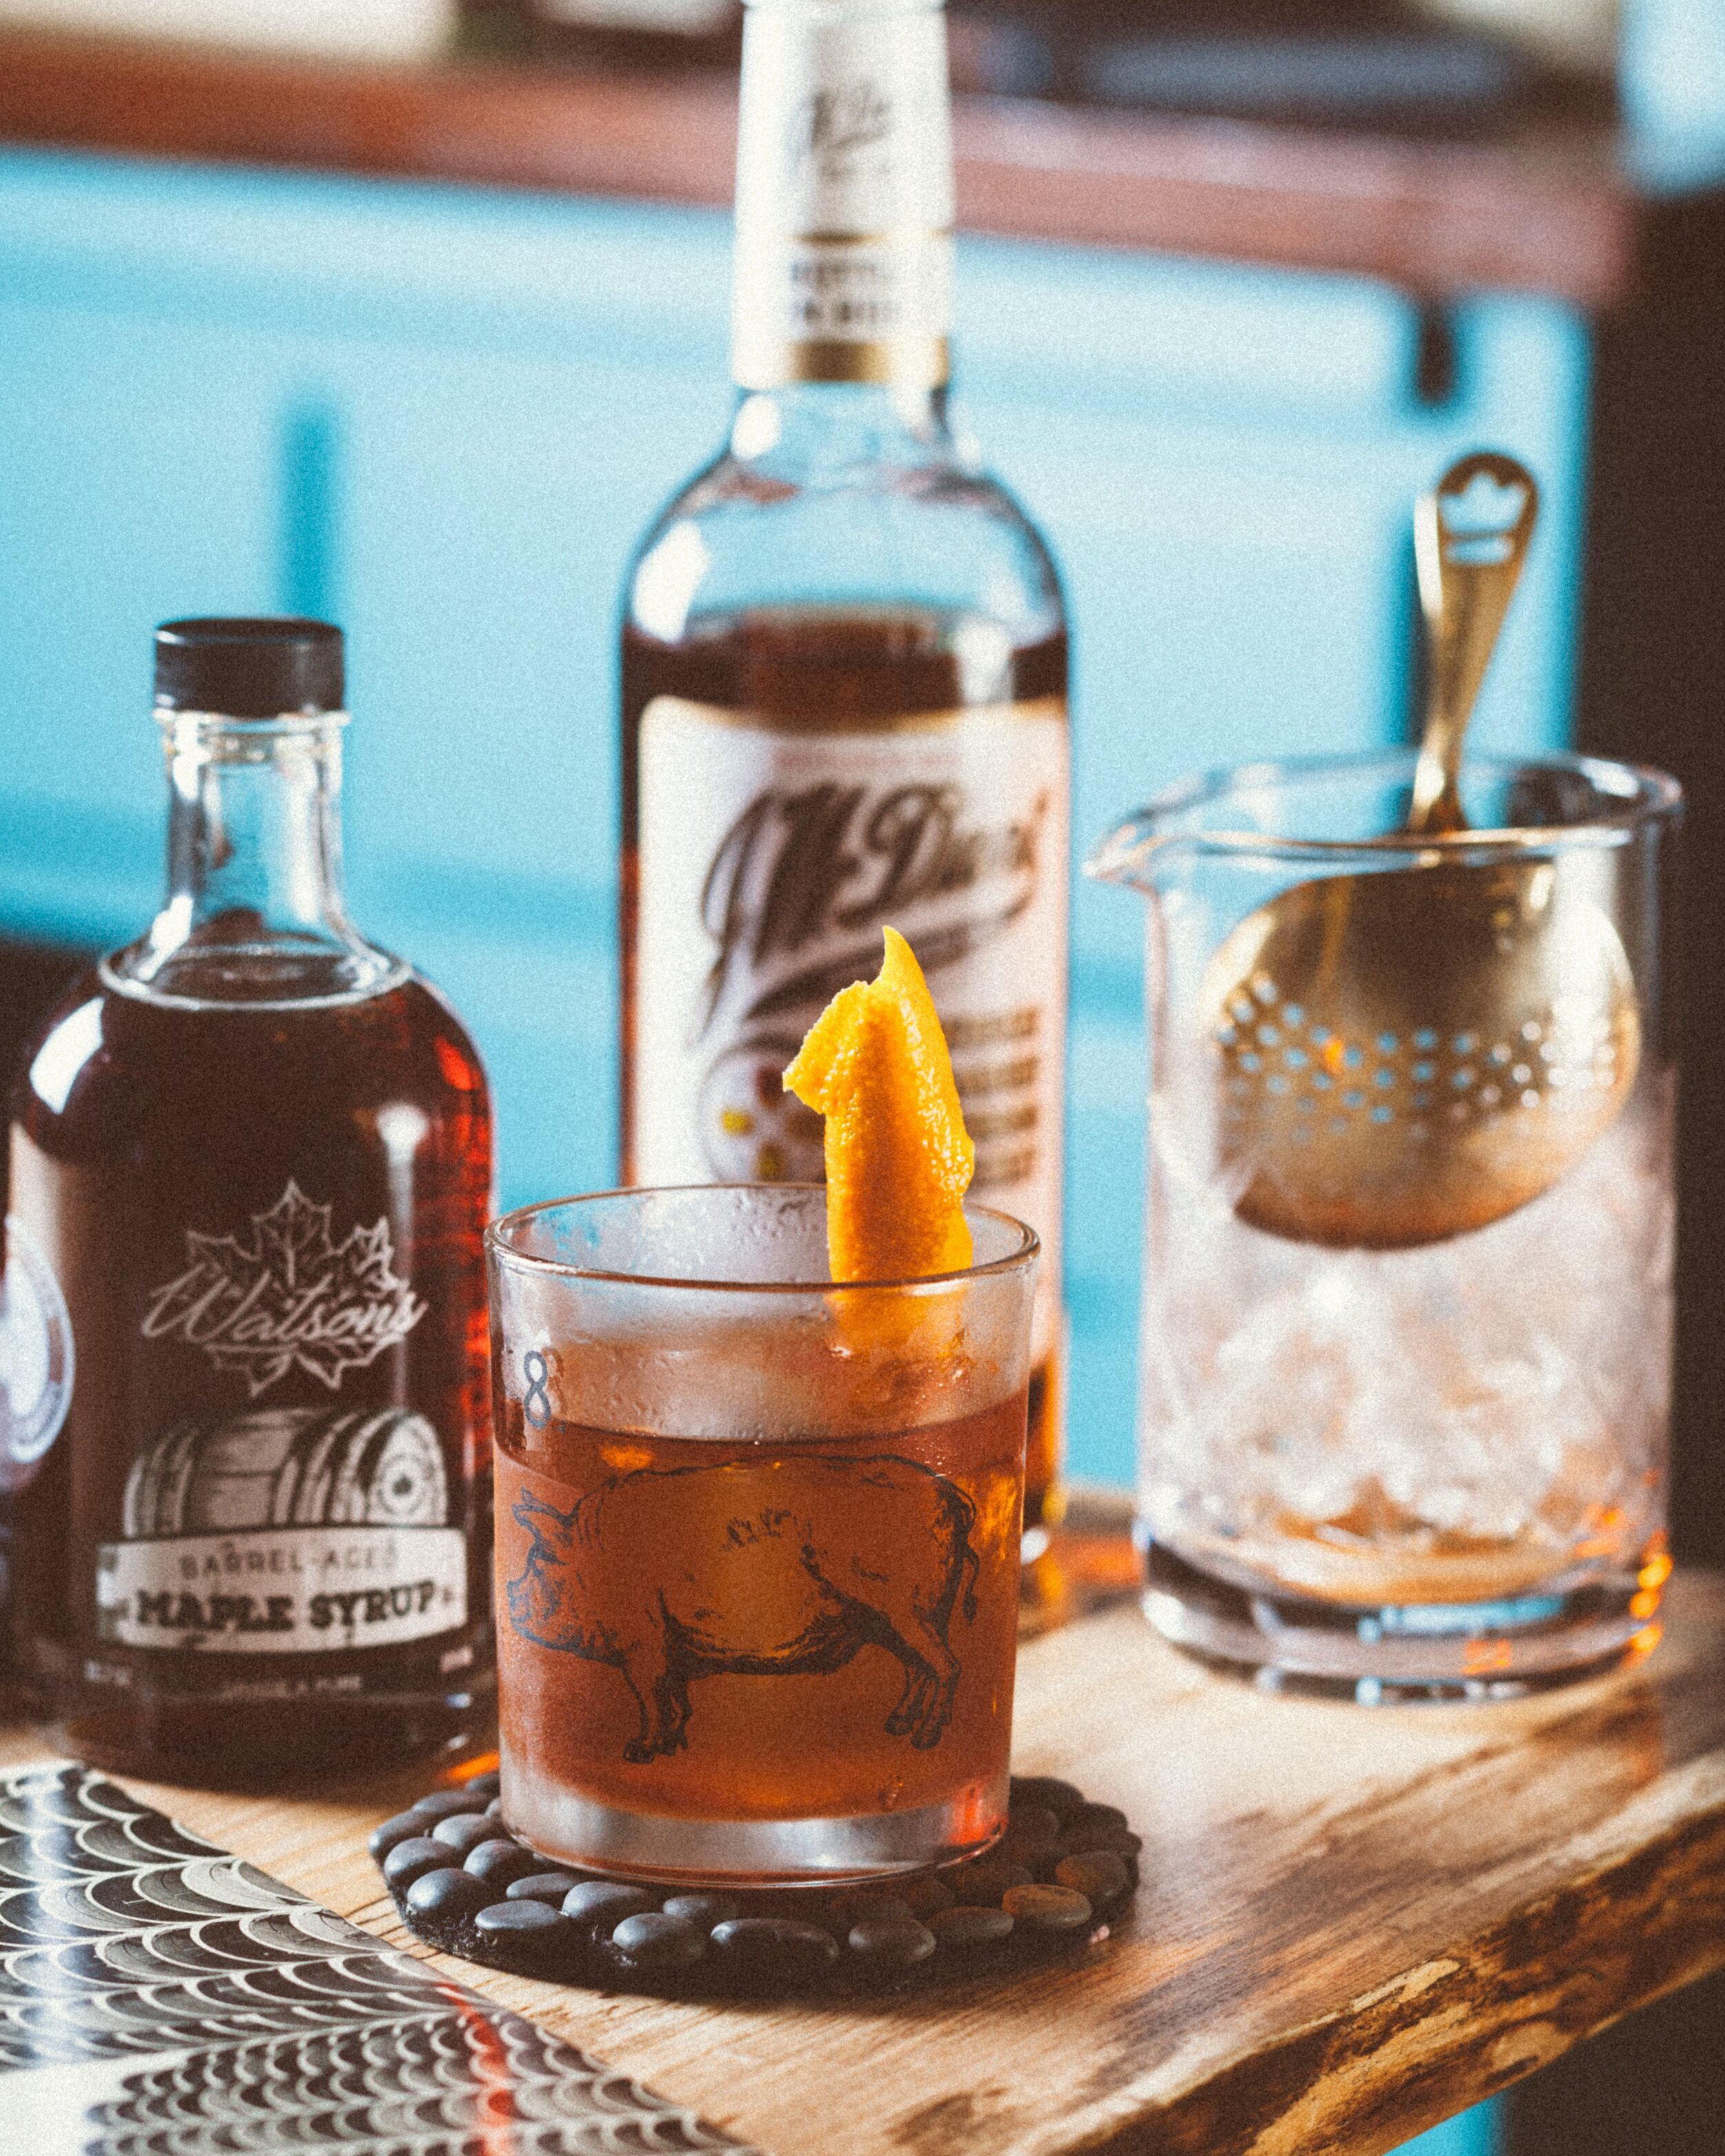 {Benton's Old Fashioned} - - 2oz Benton's bacon infused bourbon- 2 dashes Angostura Bitters- .25oz Watson's Barrel-Aged Maple SyrupStir with ice and then strain over fresh ice and garnish with an expressed orange peel and cherry.Recipe: Jim MeehanPhoto: S. Kallstrand